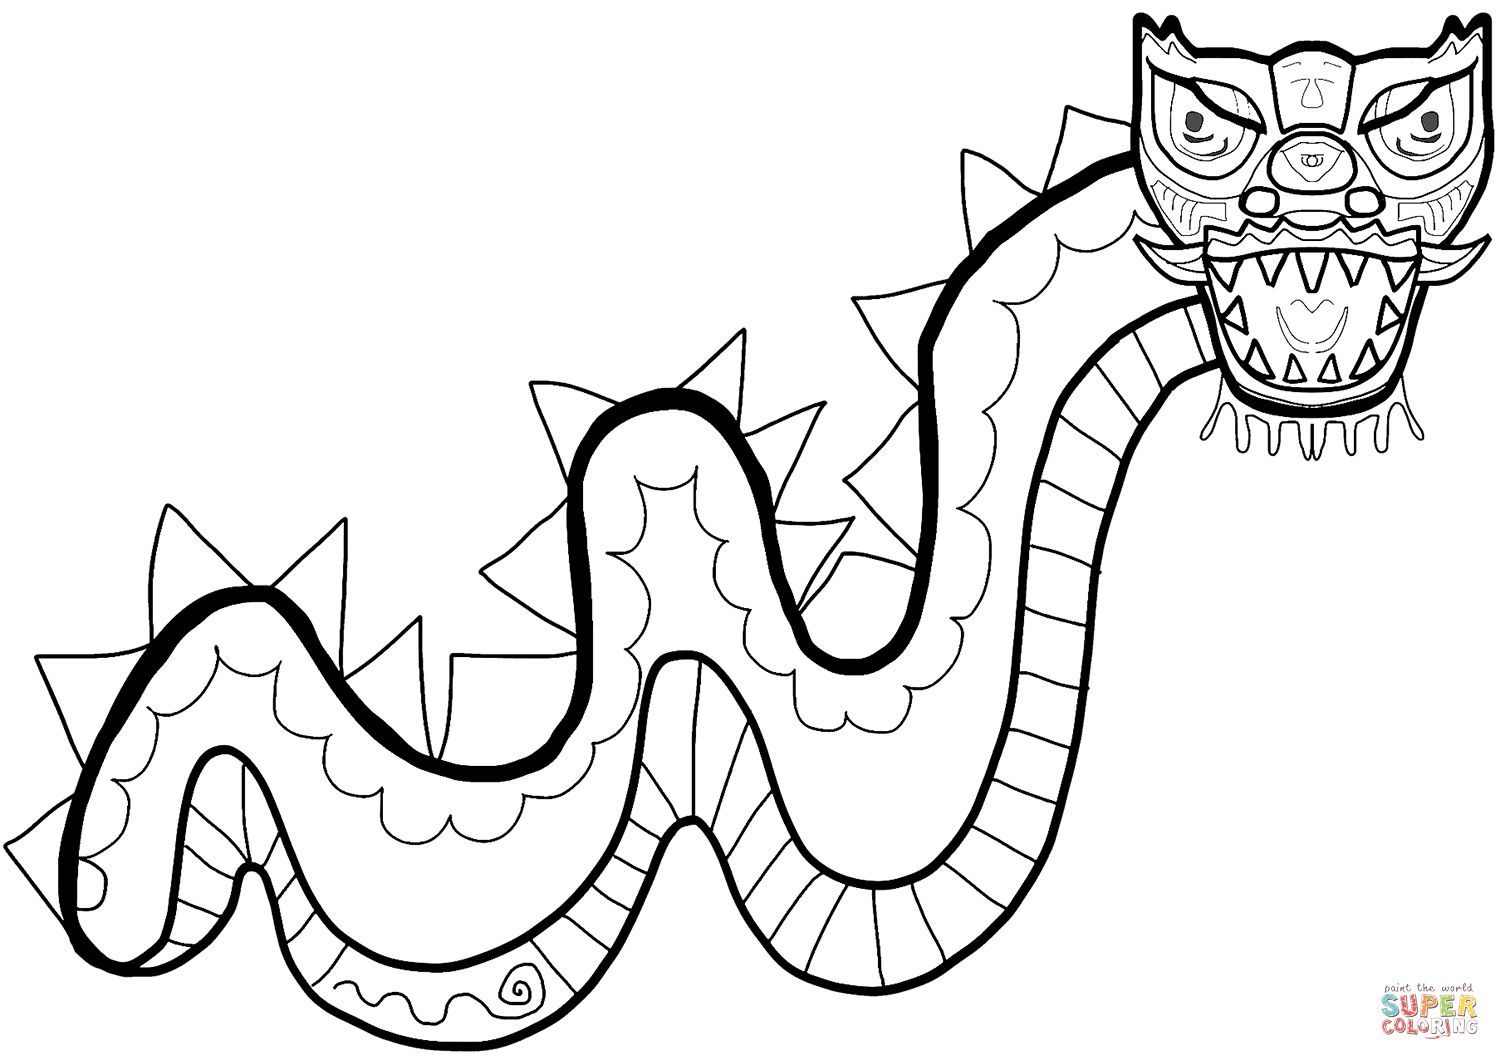 26+ Chinese new year coloring pages printable ideas